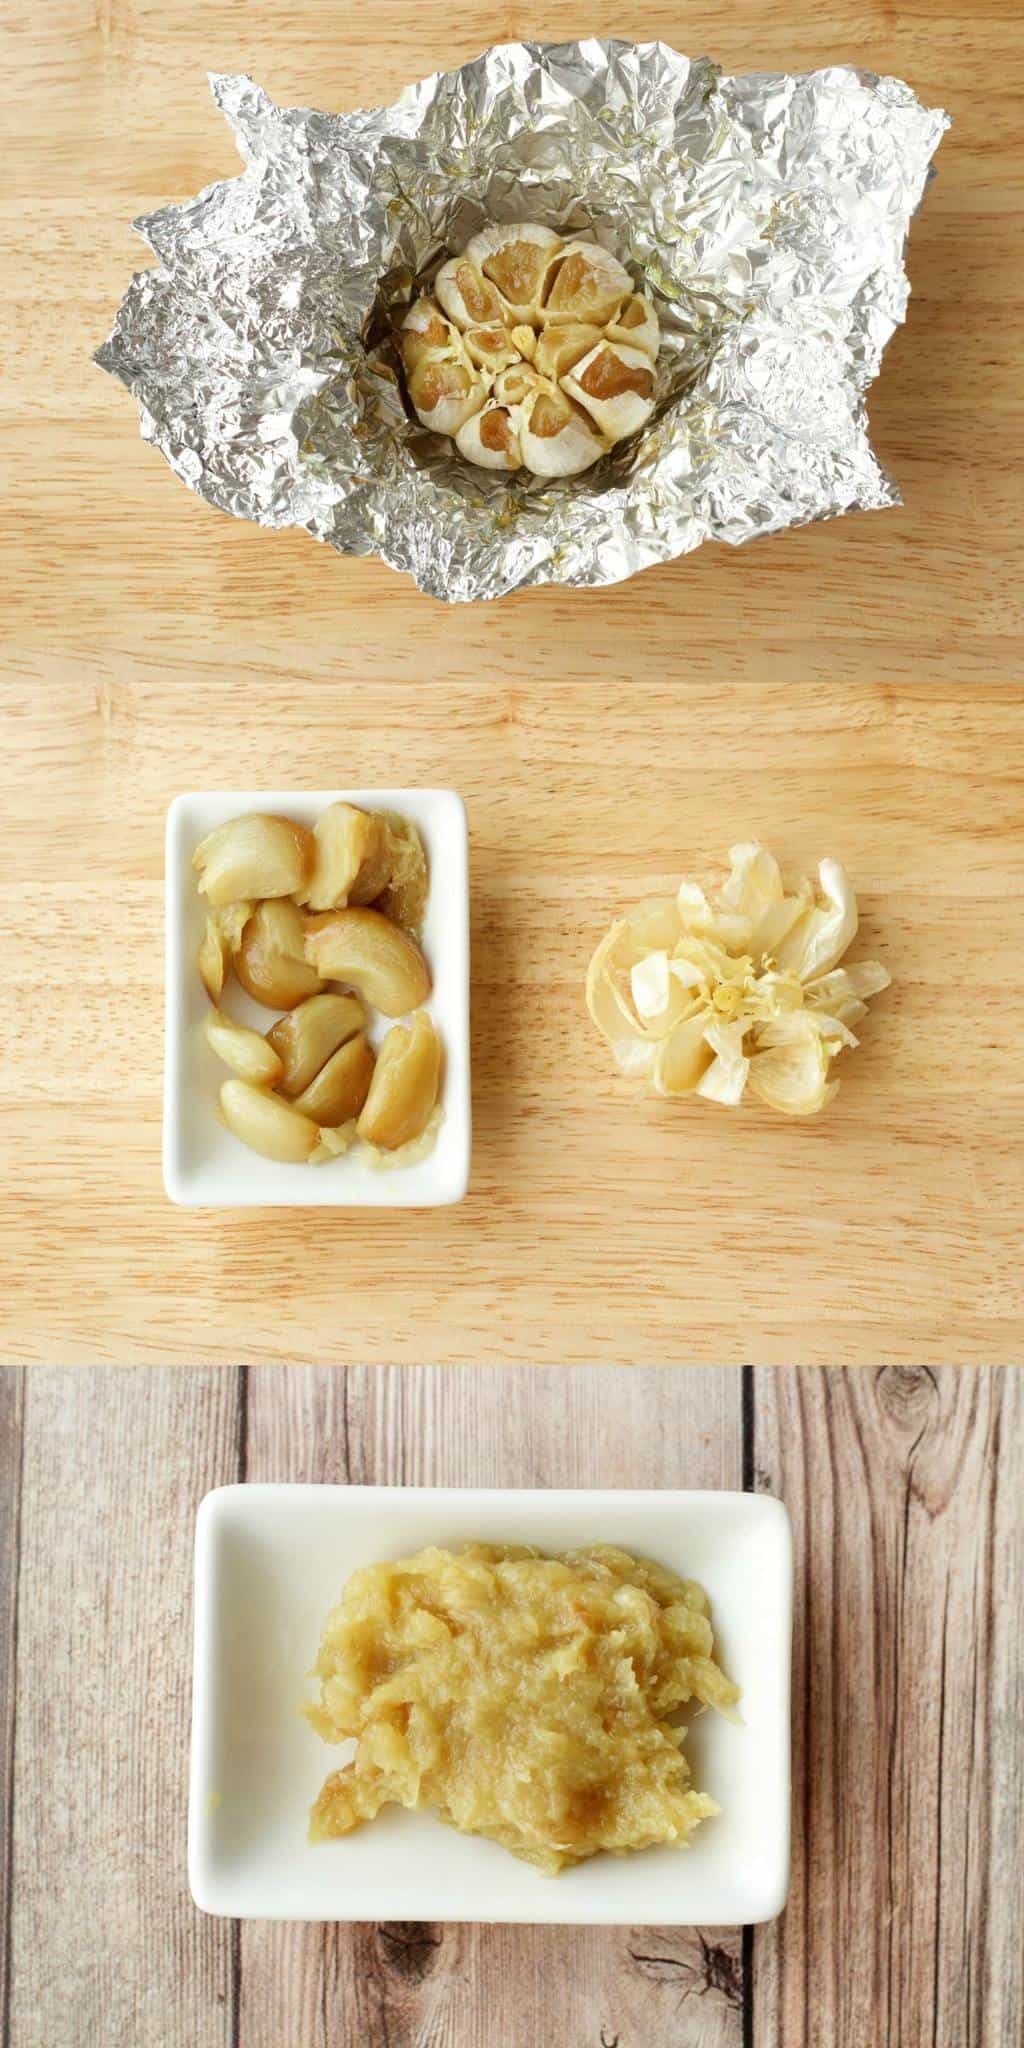 Roasted Garlic Vegan Mashed Potatoes - Making roasted Garlic #lovingitvegan